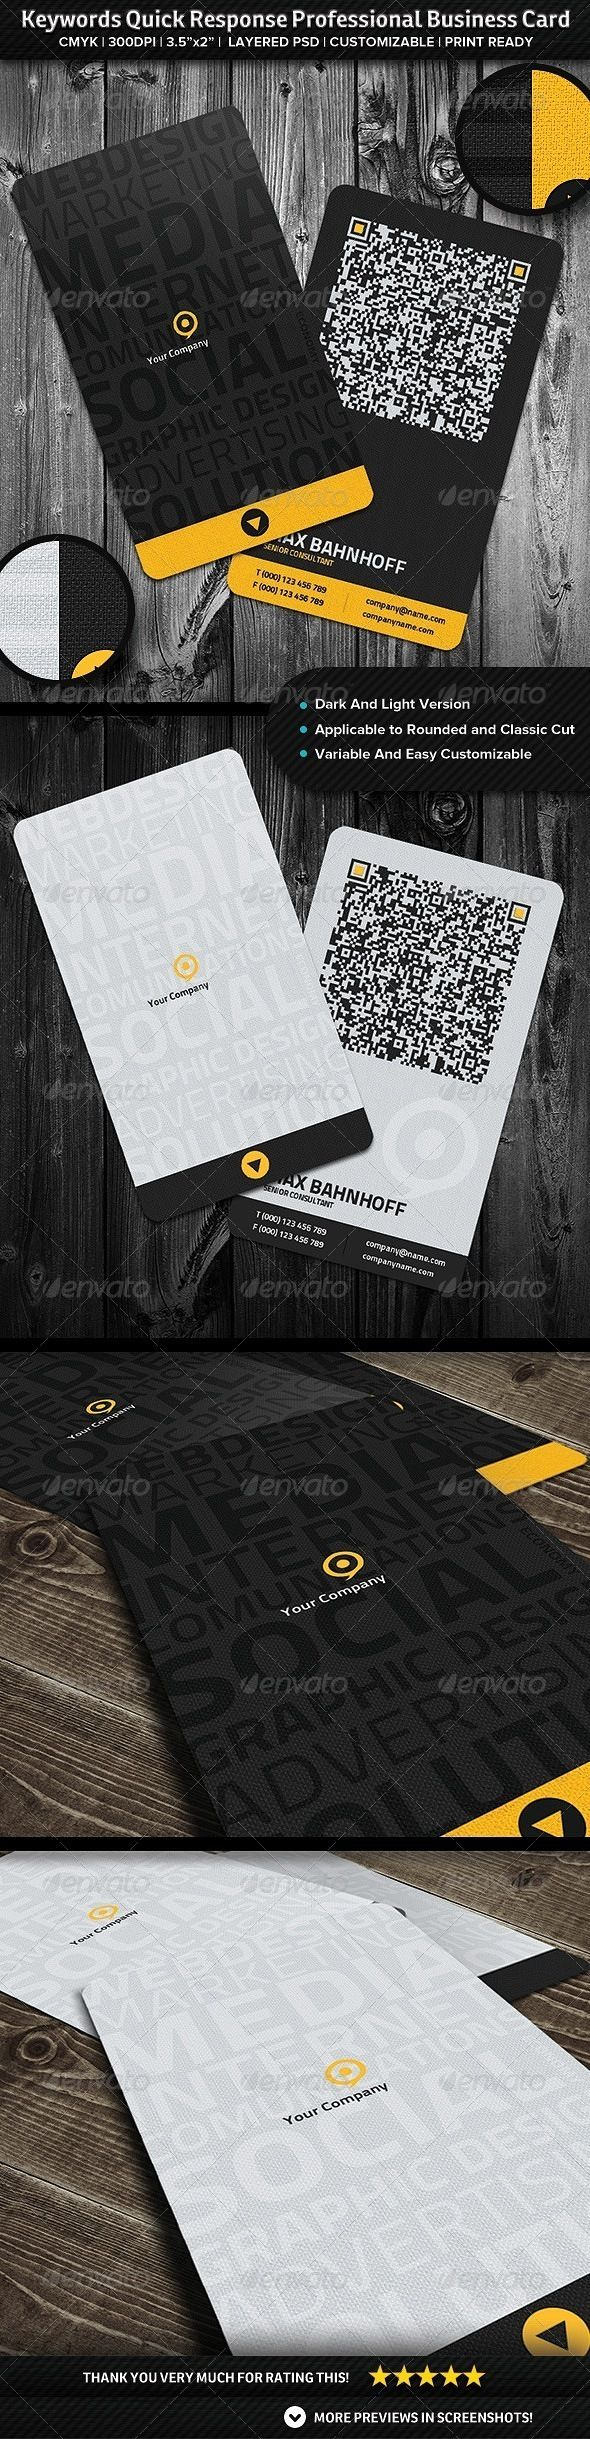 The Best Business Cards Images On Pinterest Business Card - Quick business card template